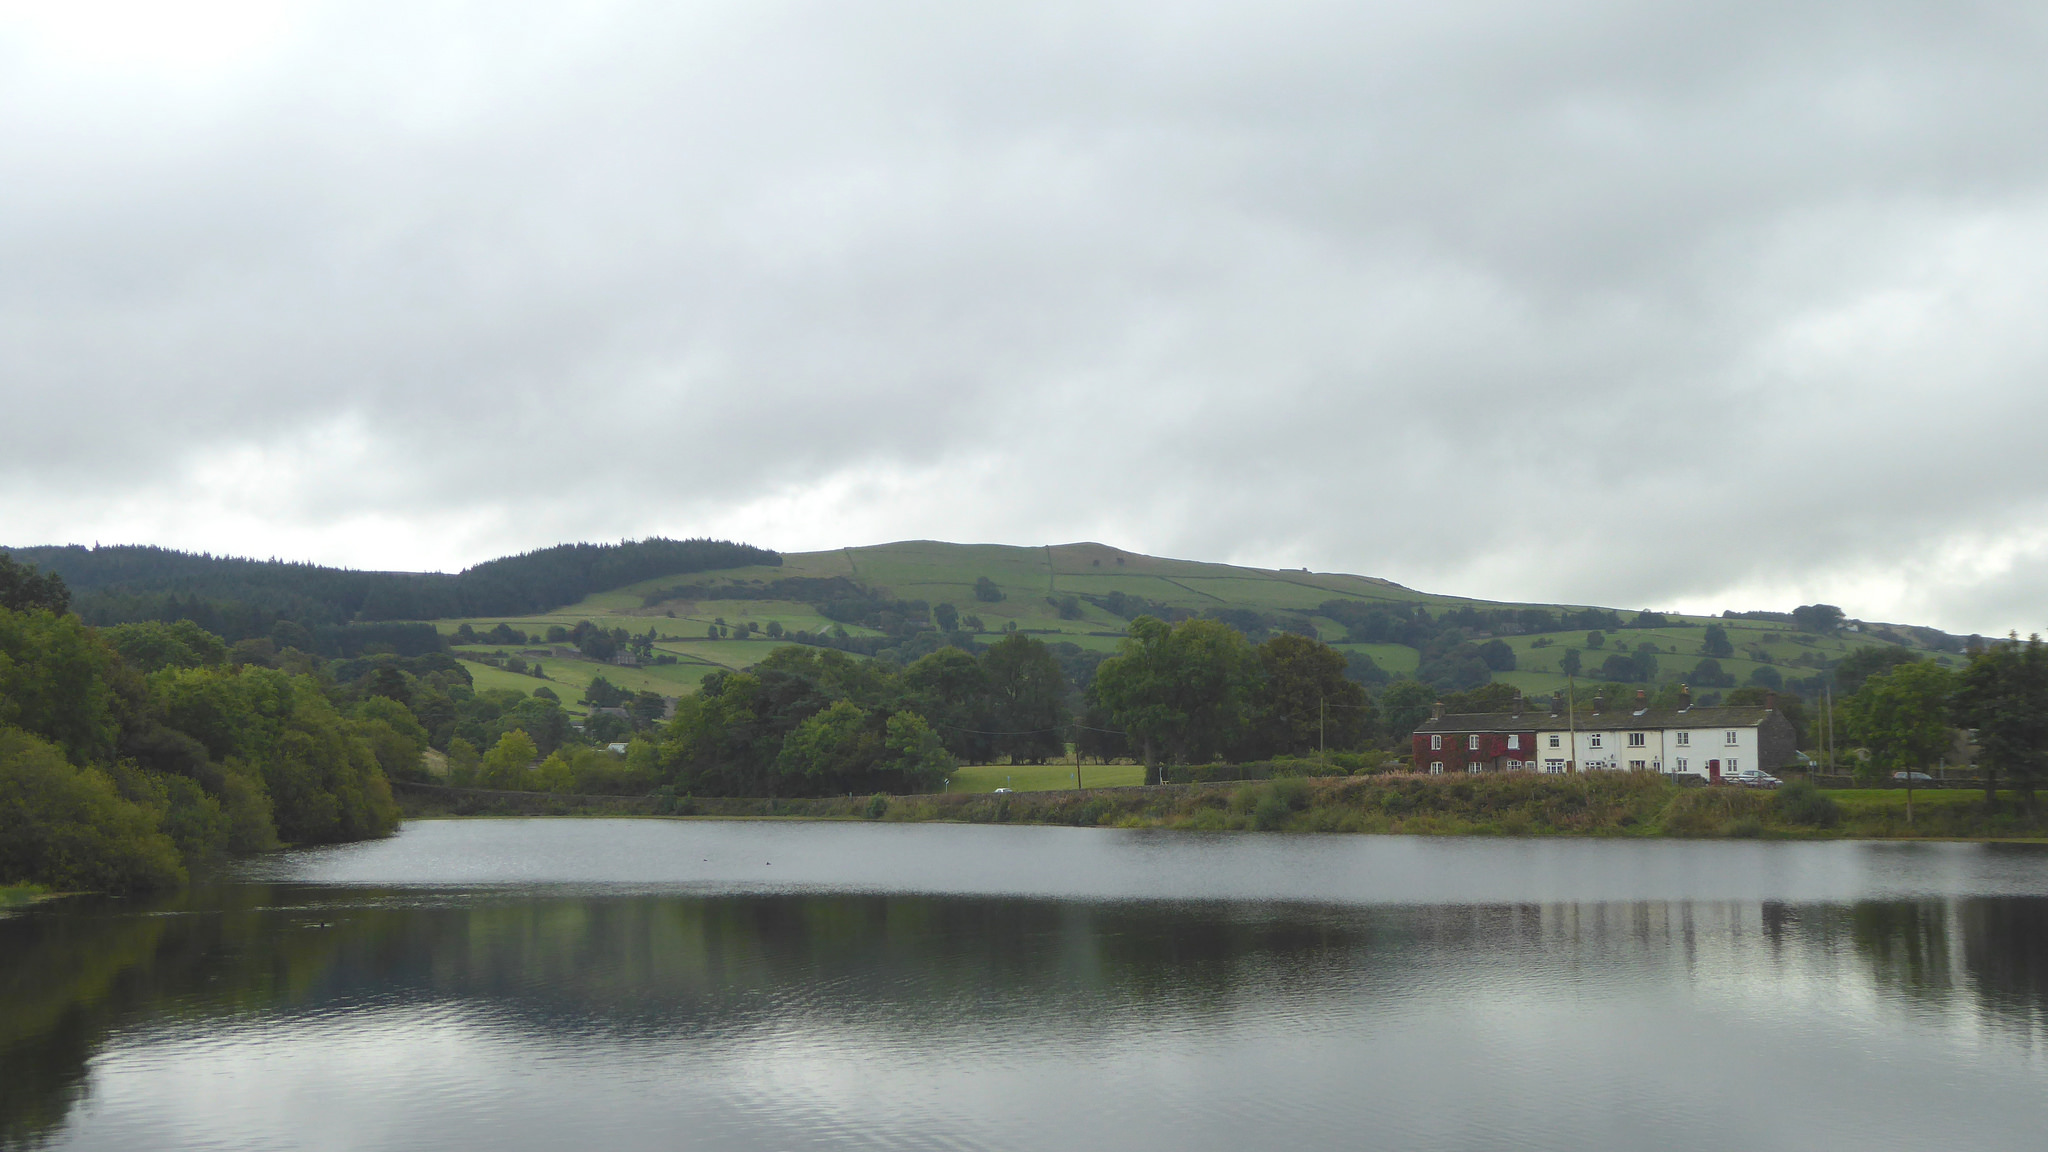 Bottom's Reservoir, with some houses in the background